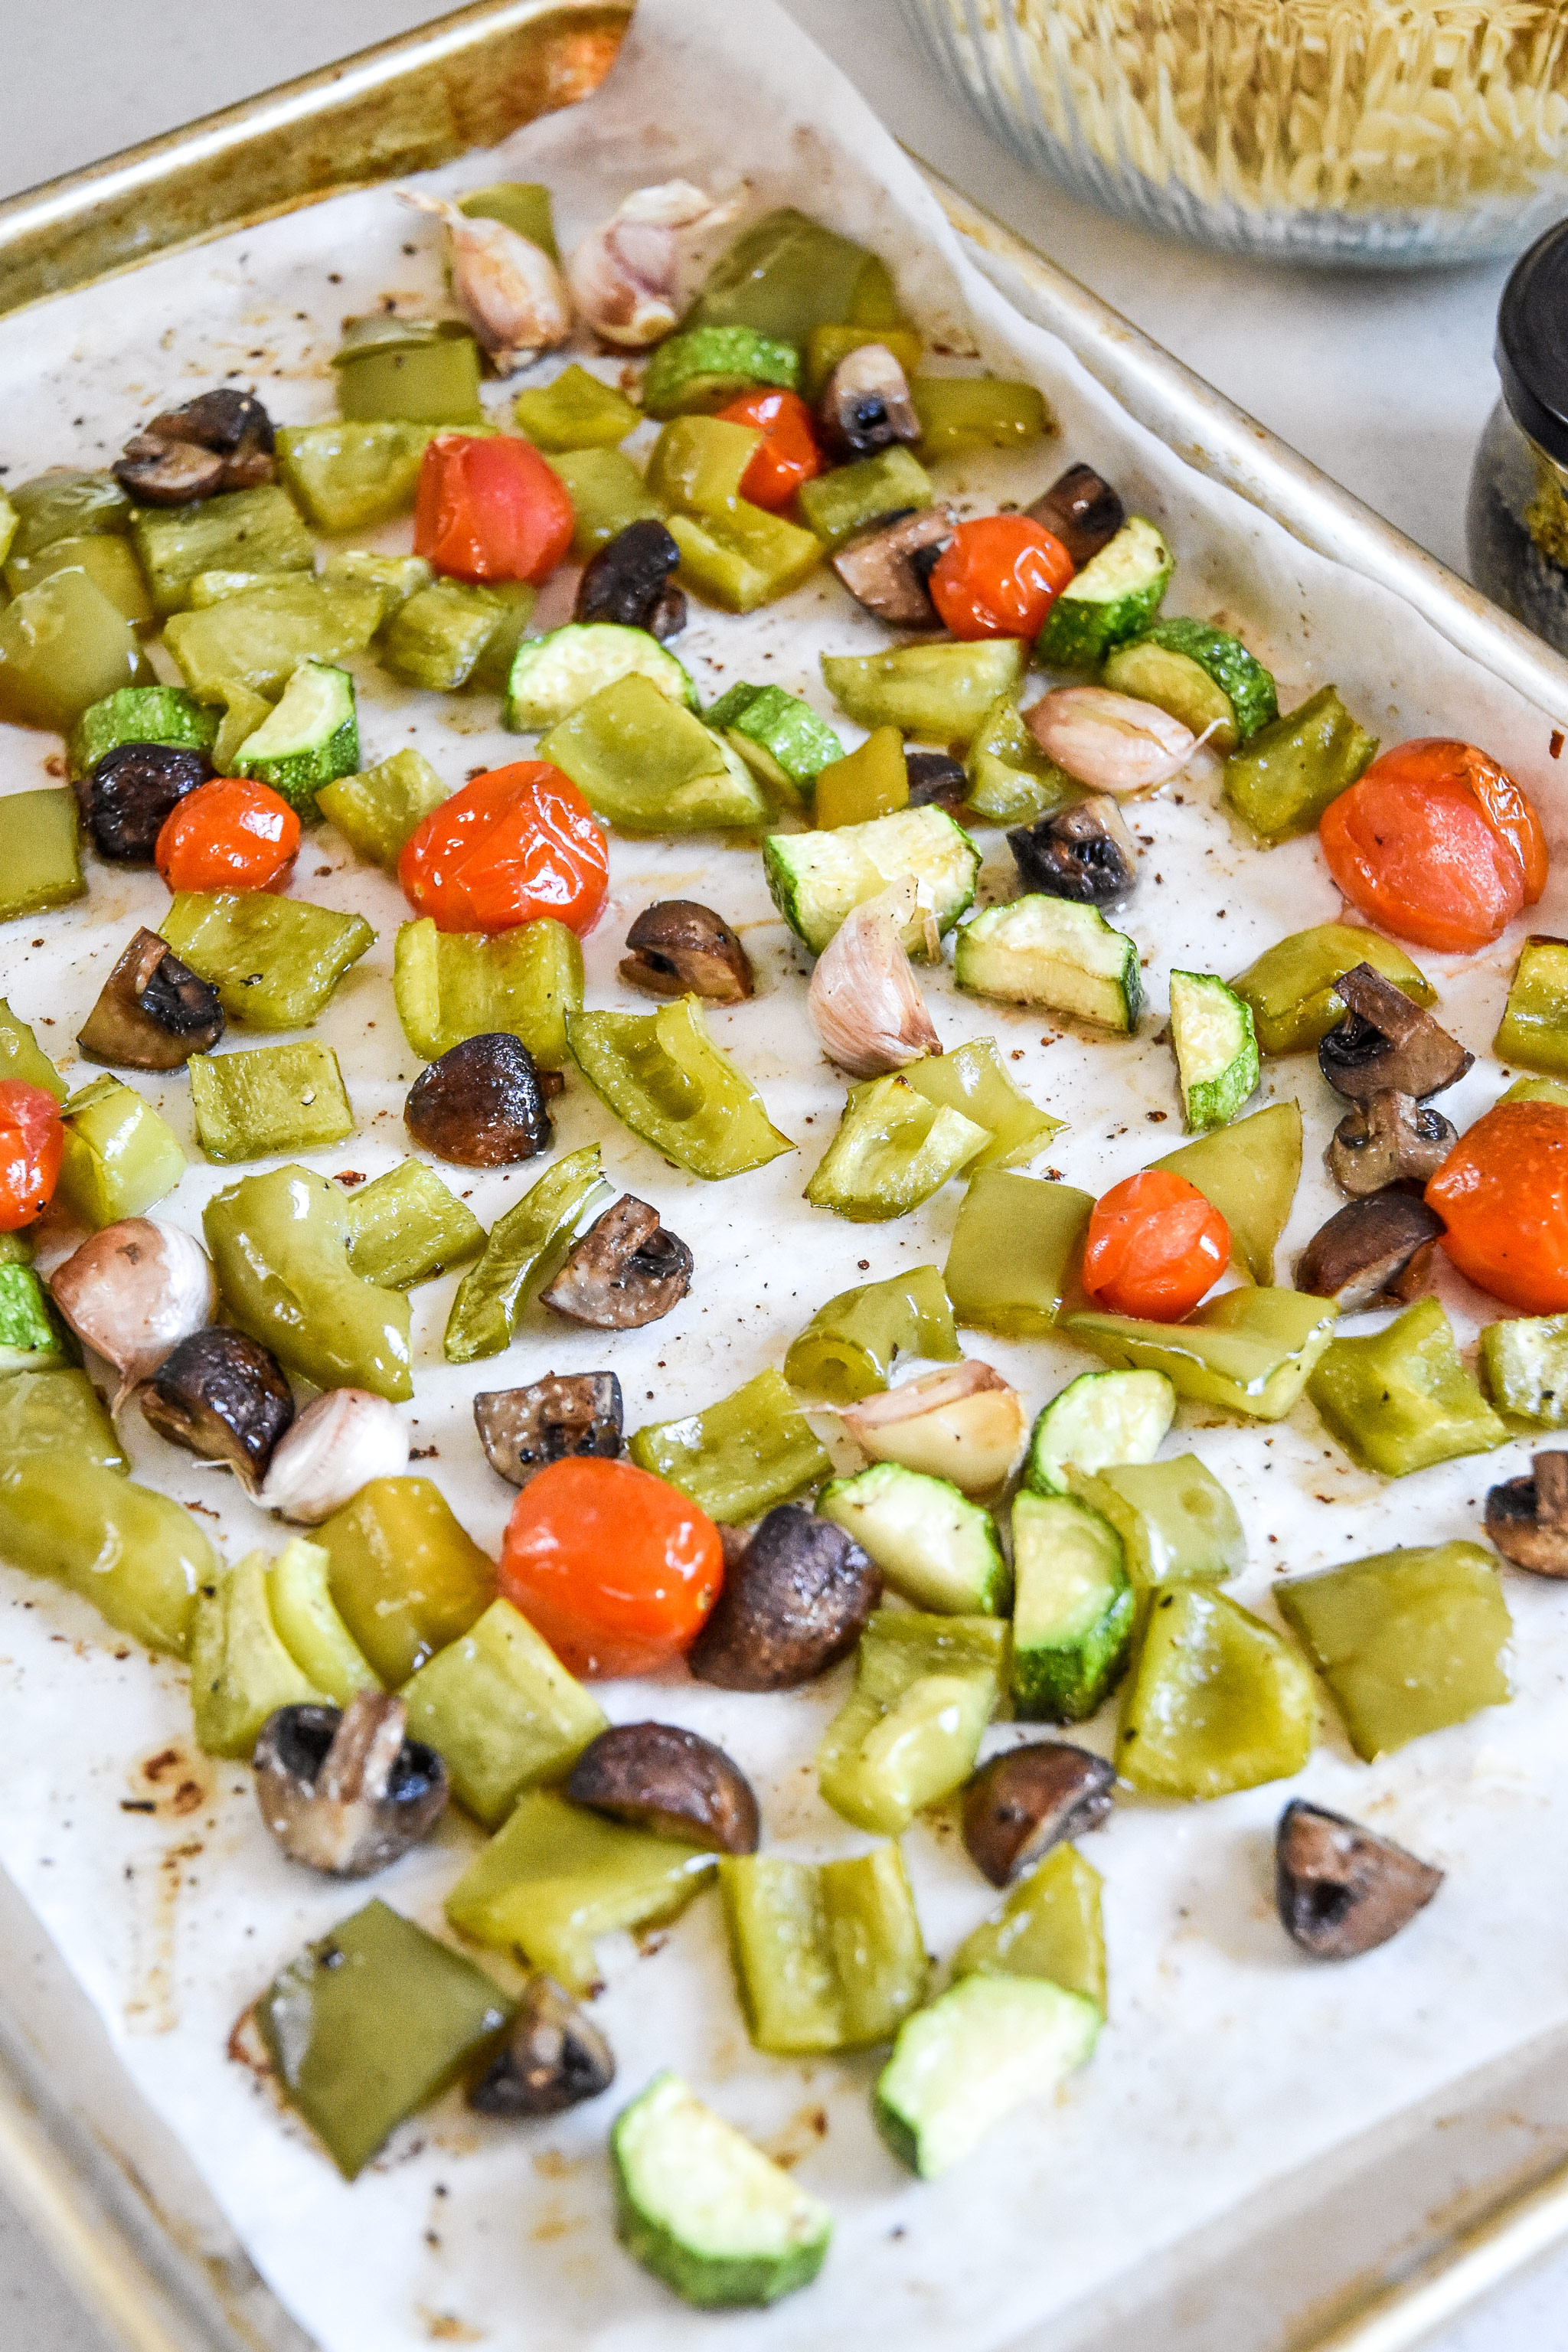 roasted veggies on a sheet pan for the pesto pasta salad